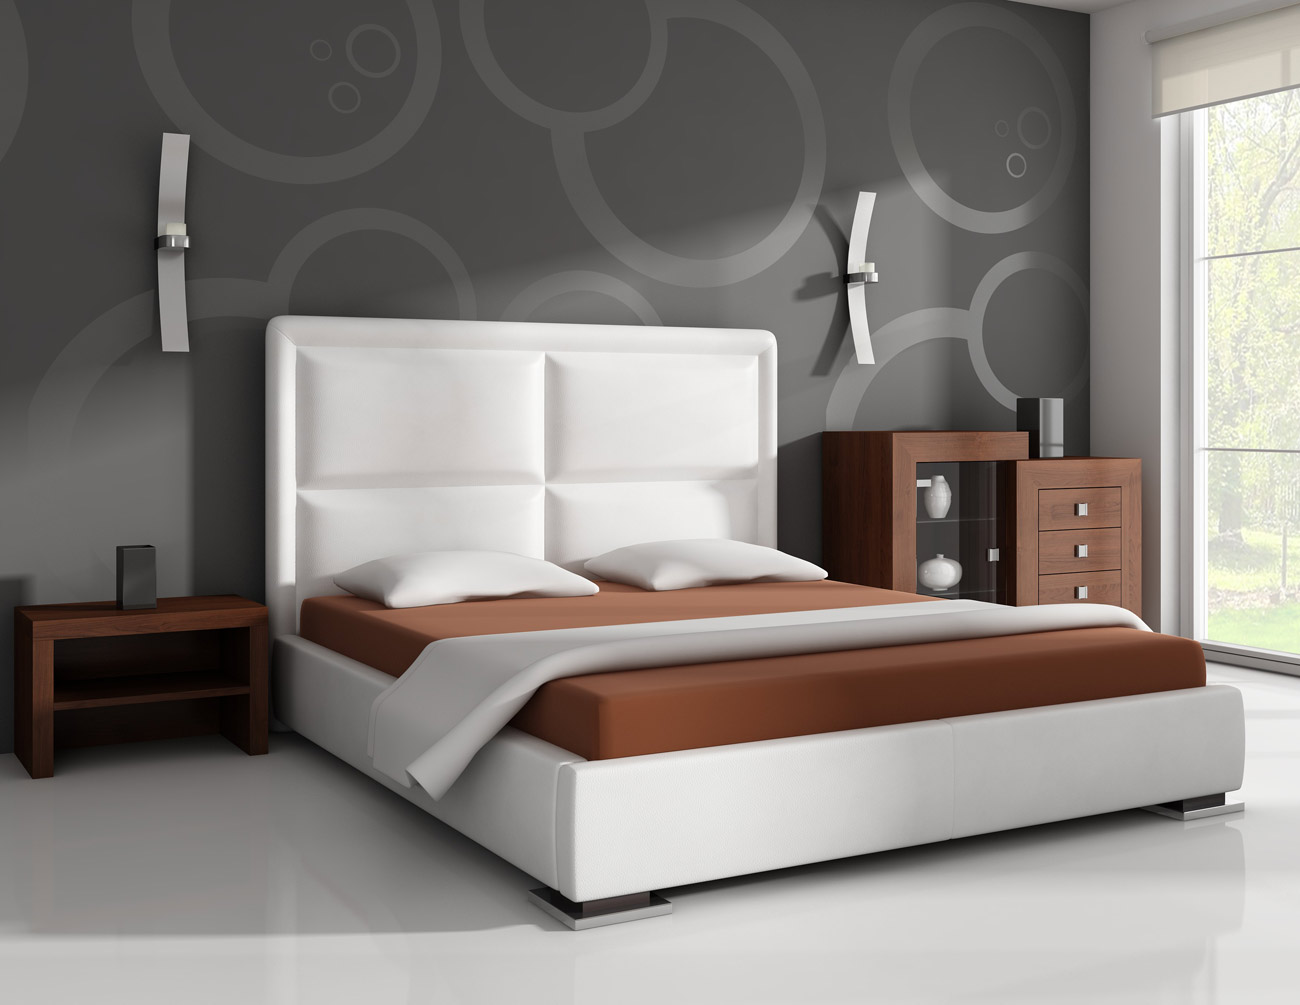 Upholstered Moa Bedroom Furniture Bed In Any Material